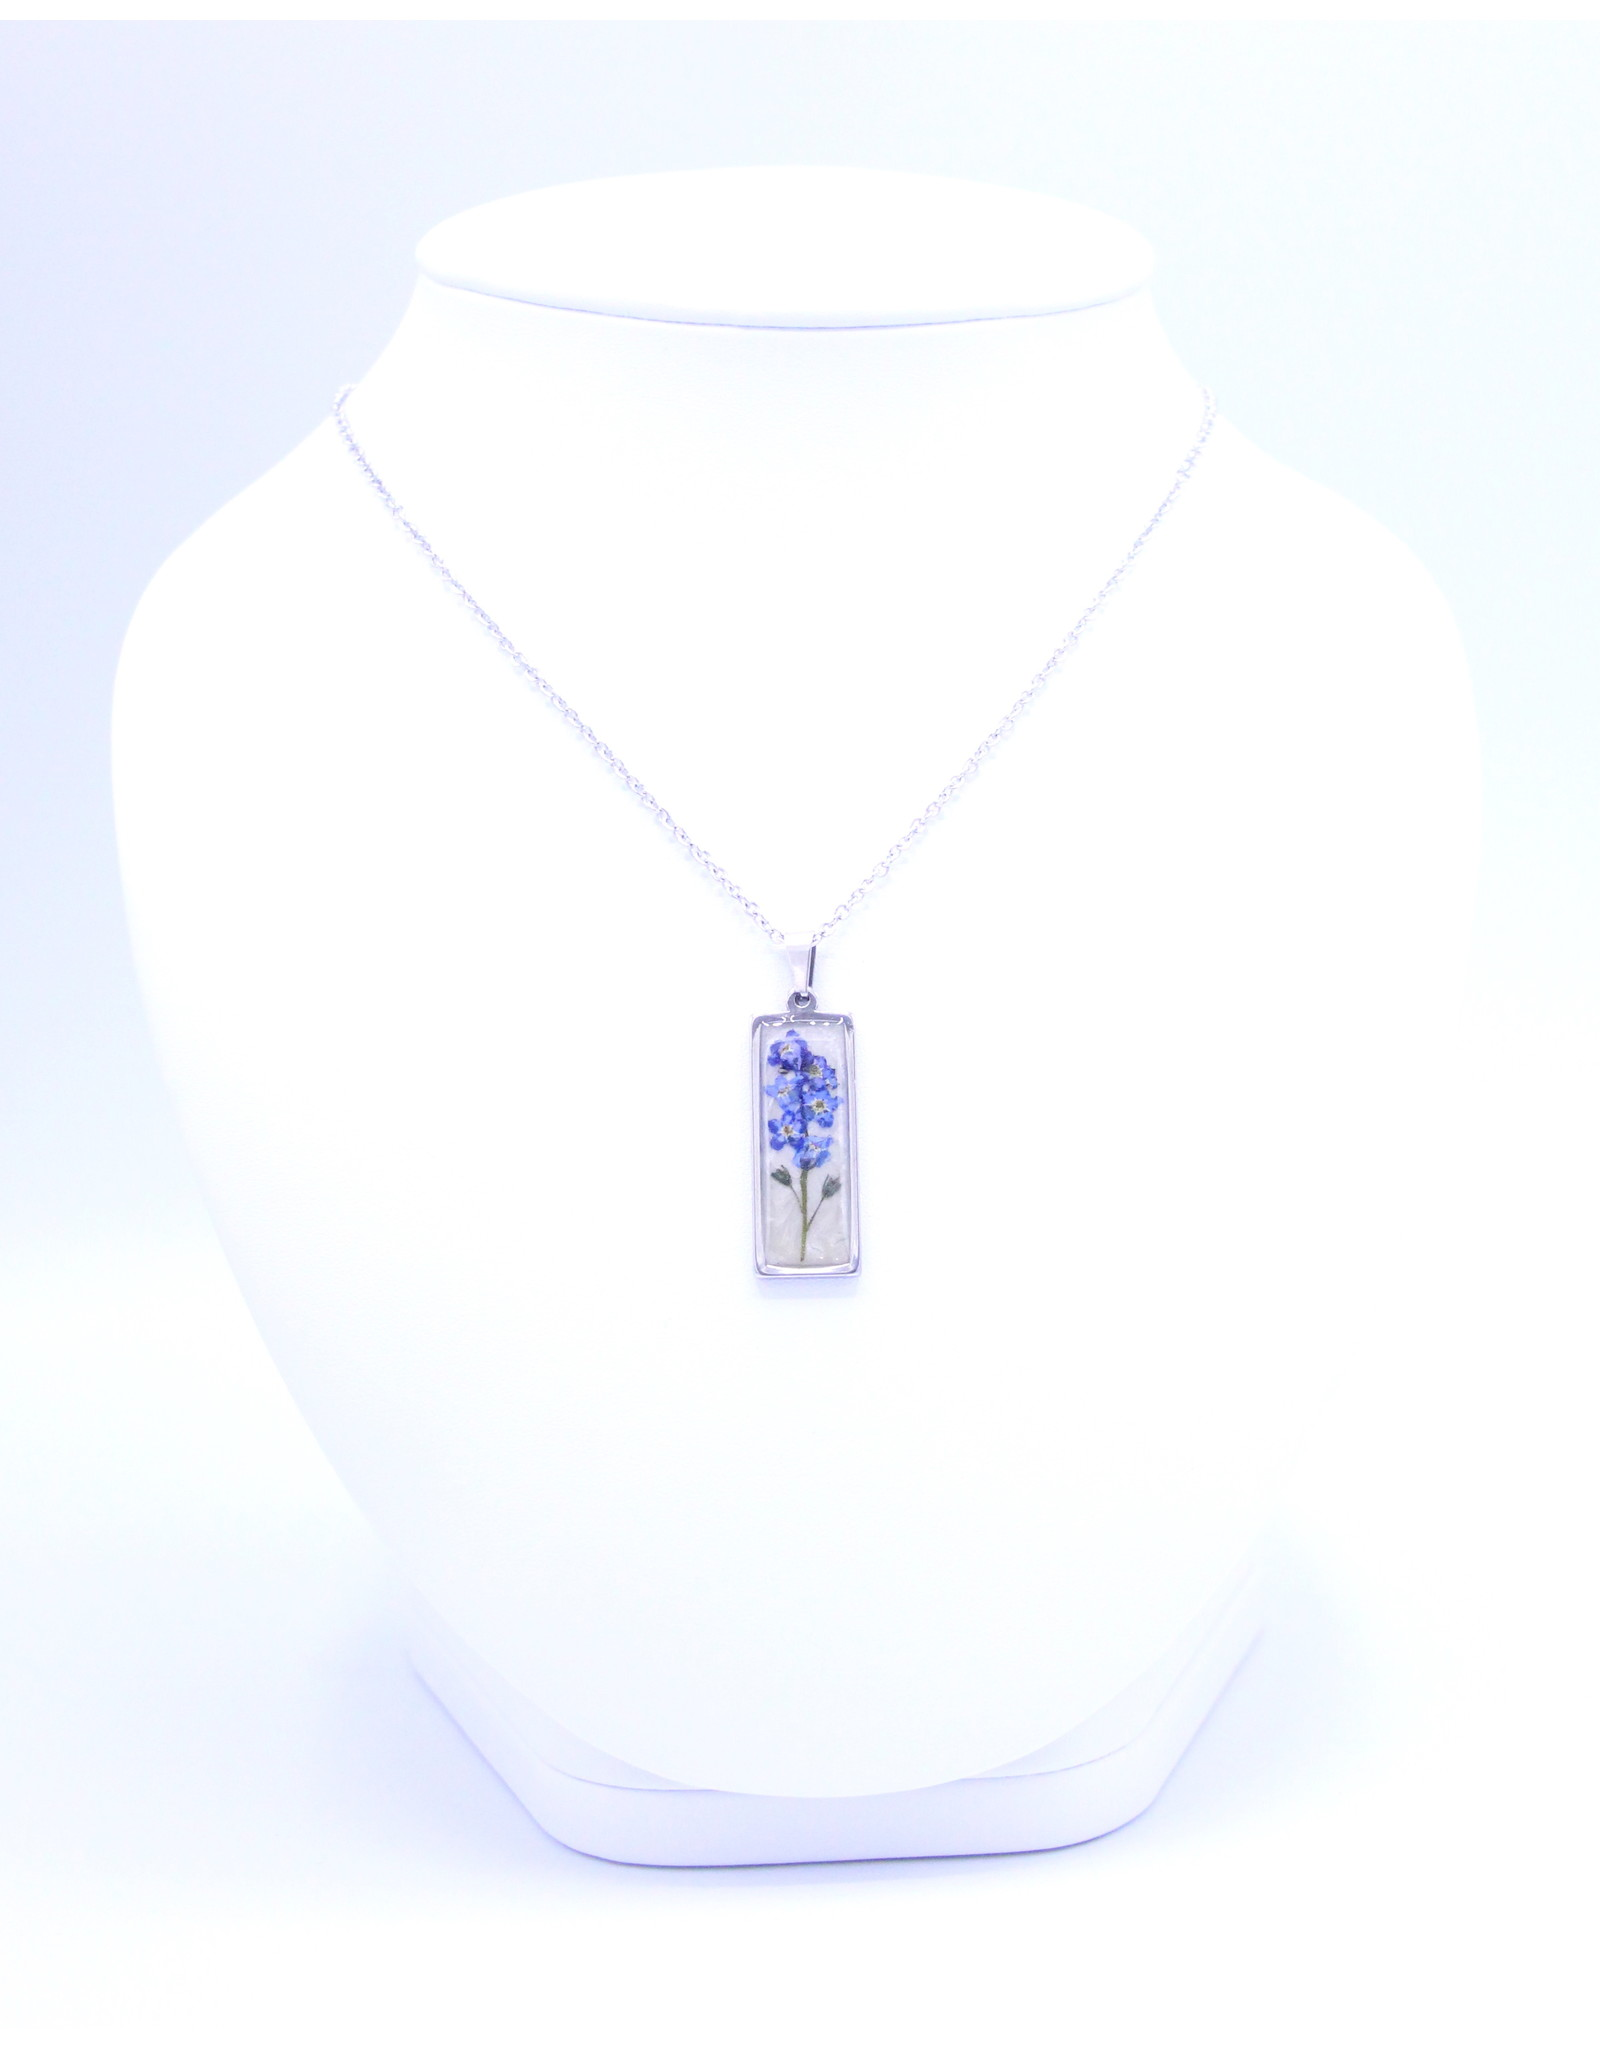 25mm Forget Me Not Necklace - N25FMN1